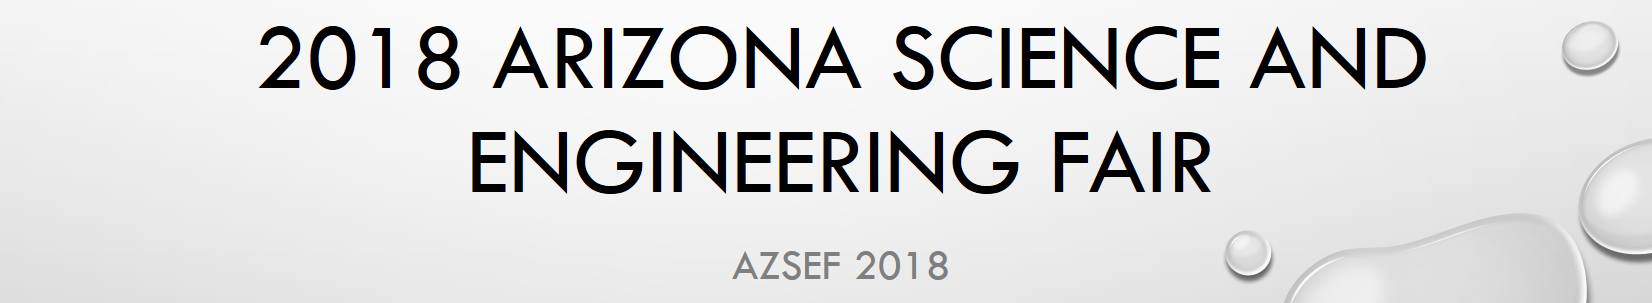 2018 Arizona Science and Engineering Fair